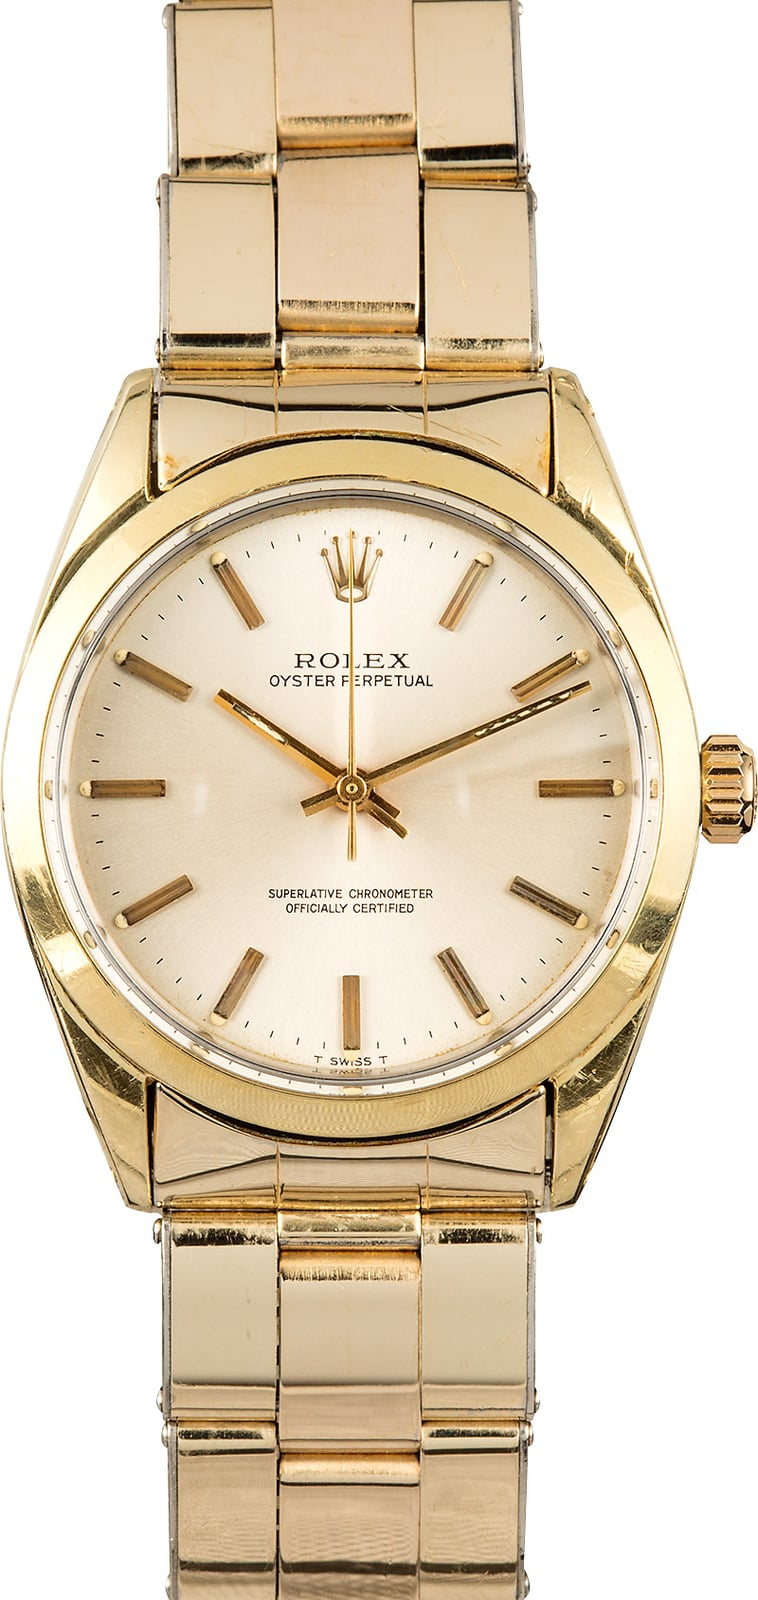 Vintage rolex oyster perpetual 1024 for Vintage rolex oyster